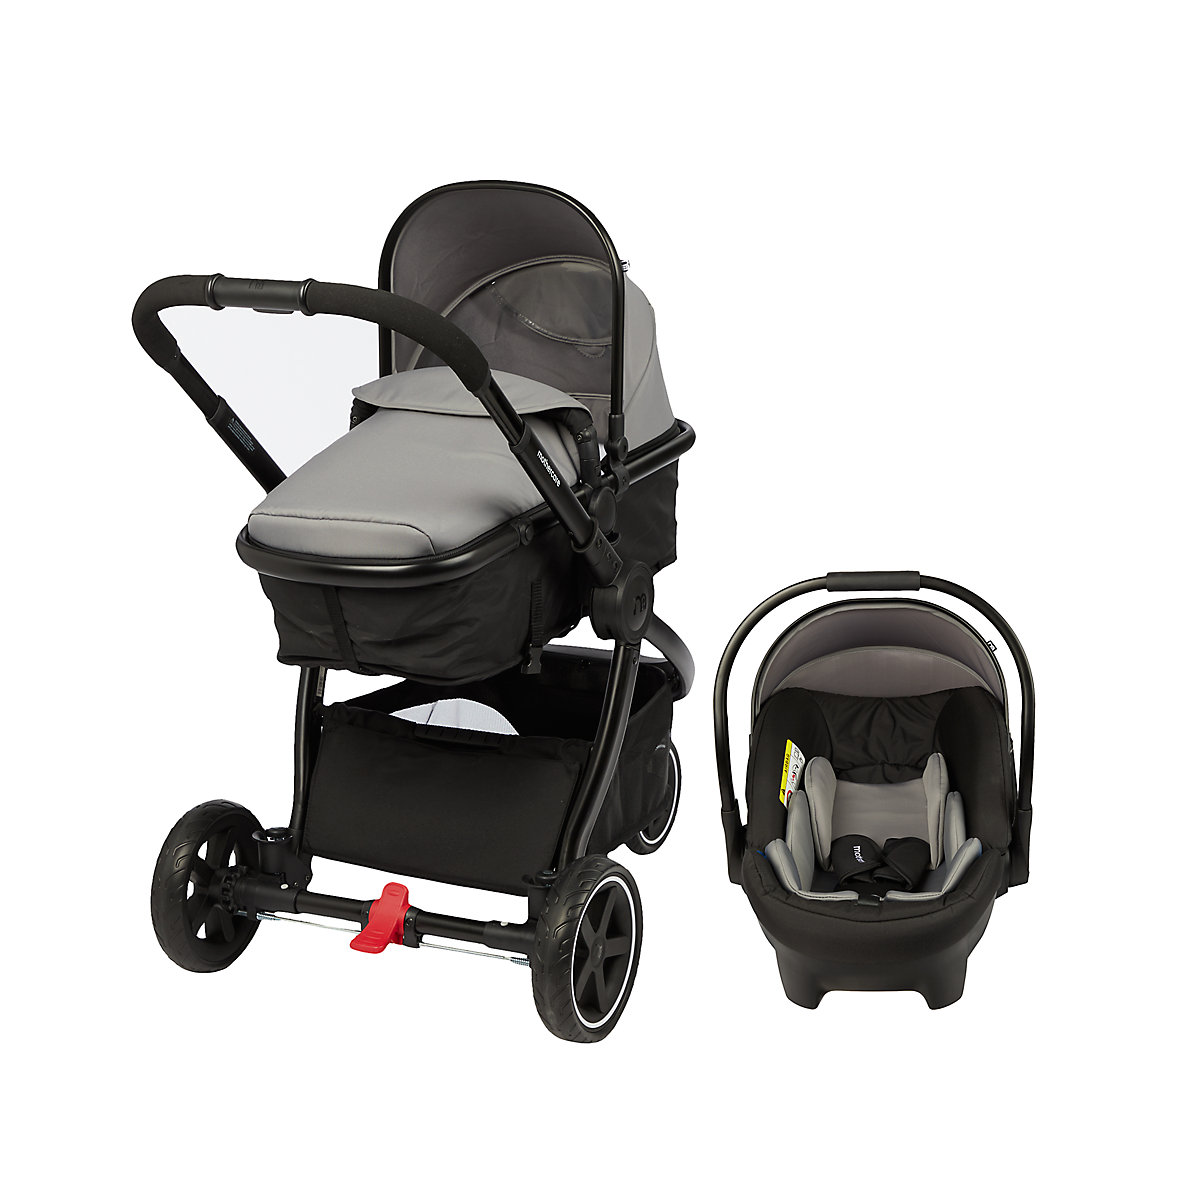 b034a3aeeef1 mothercare journey 3-wheel black travel system - charcoal. Available from Mothercare  for